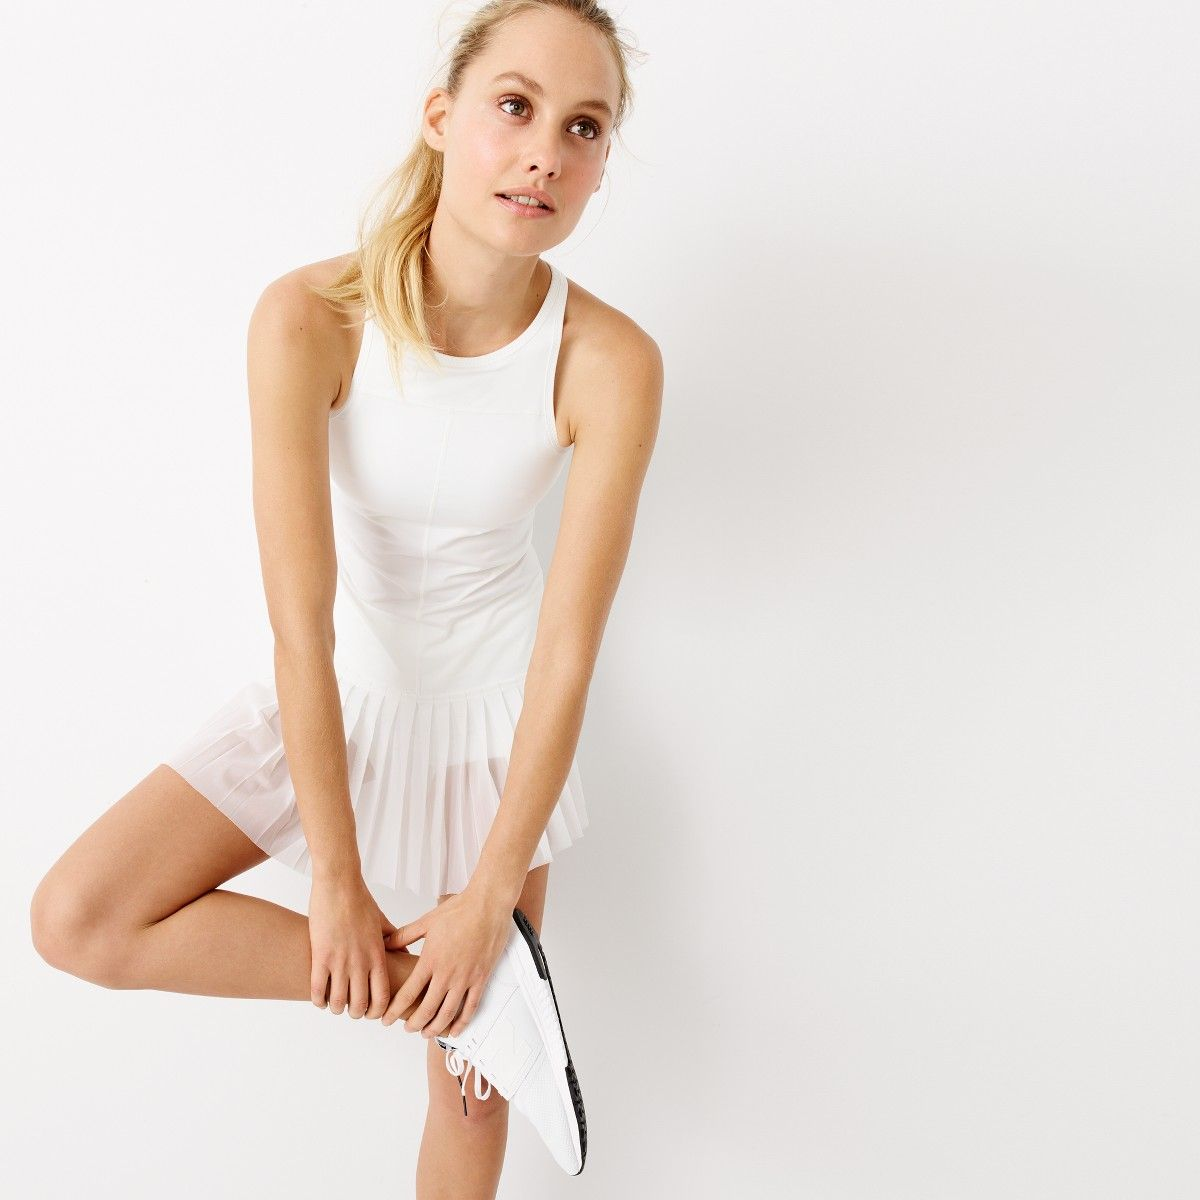 New Balance For J Crew Tennis Dress Women S Activewear J Crew Tennis Dress Athleisure Outfits Active Wear For Women